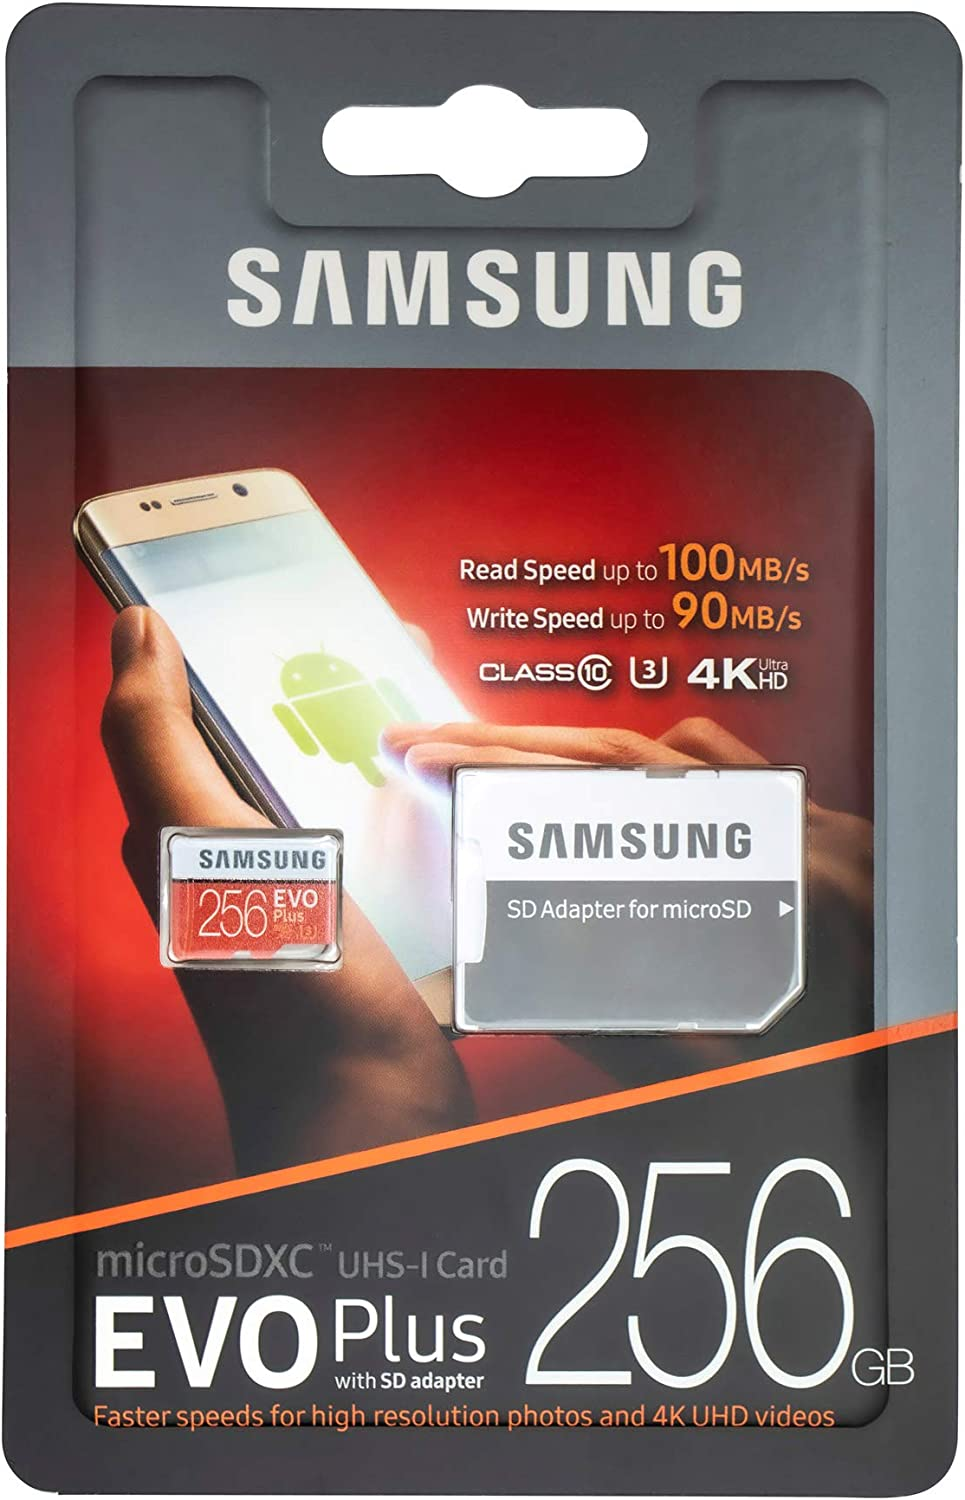 Samsung EVO+ Plus 256GB MicroSD Memory Card for Samsung Phone Works with Galaxy S20 Fan Edition, S20 FE 5G Cell Phone (MB-MC256G) Bundle with (1) Everything But Stromboli SD & Micro SDXC Card Reader